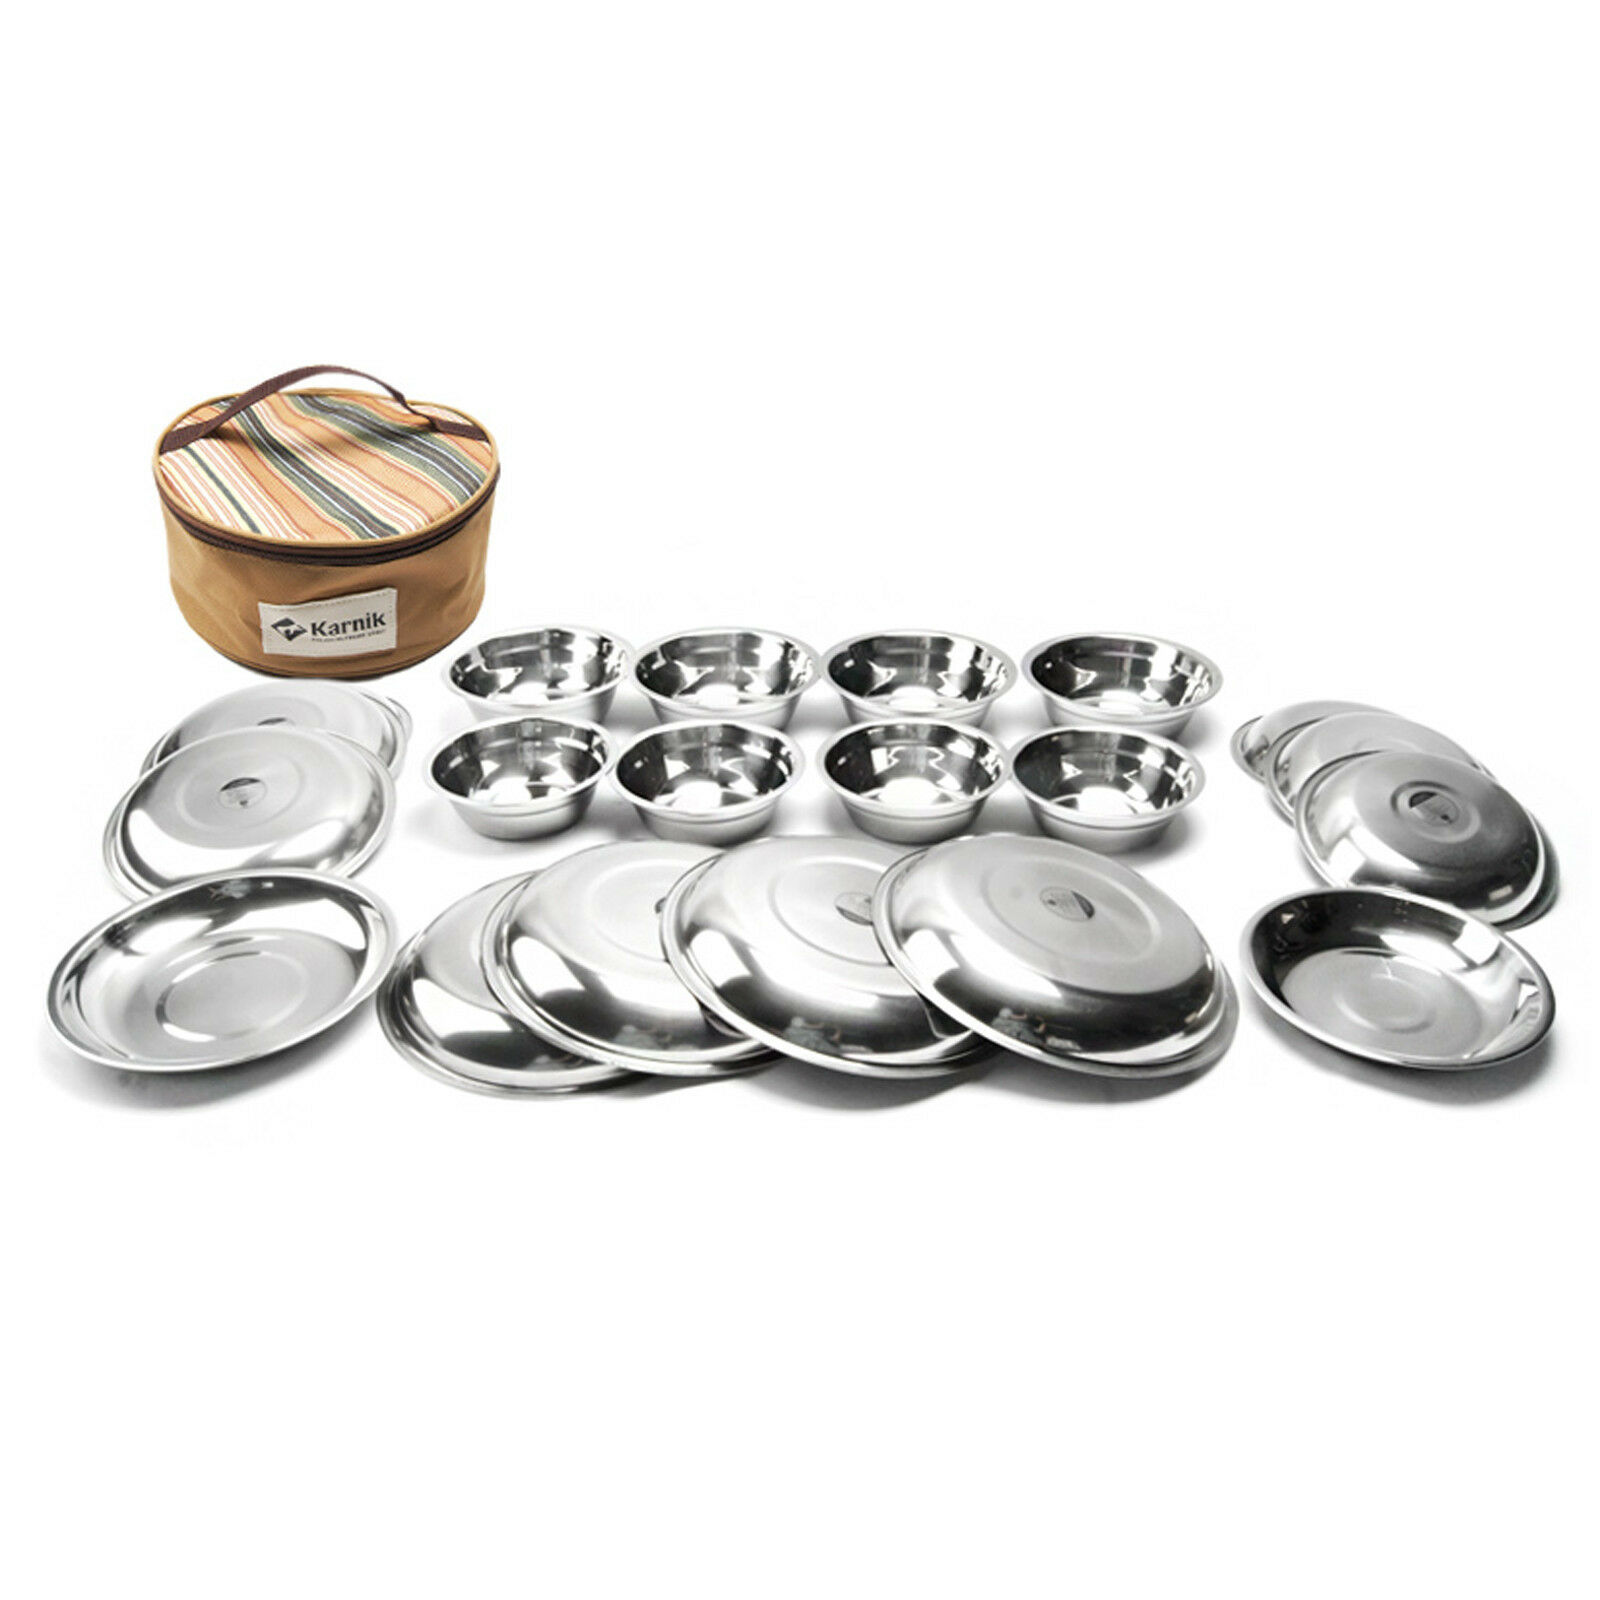 Camping Outdoor  Bowl Set Stainless Steel Steel Steel Cookware 20PCS Set 804e0b